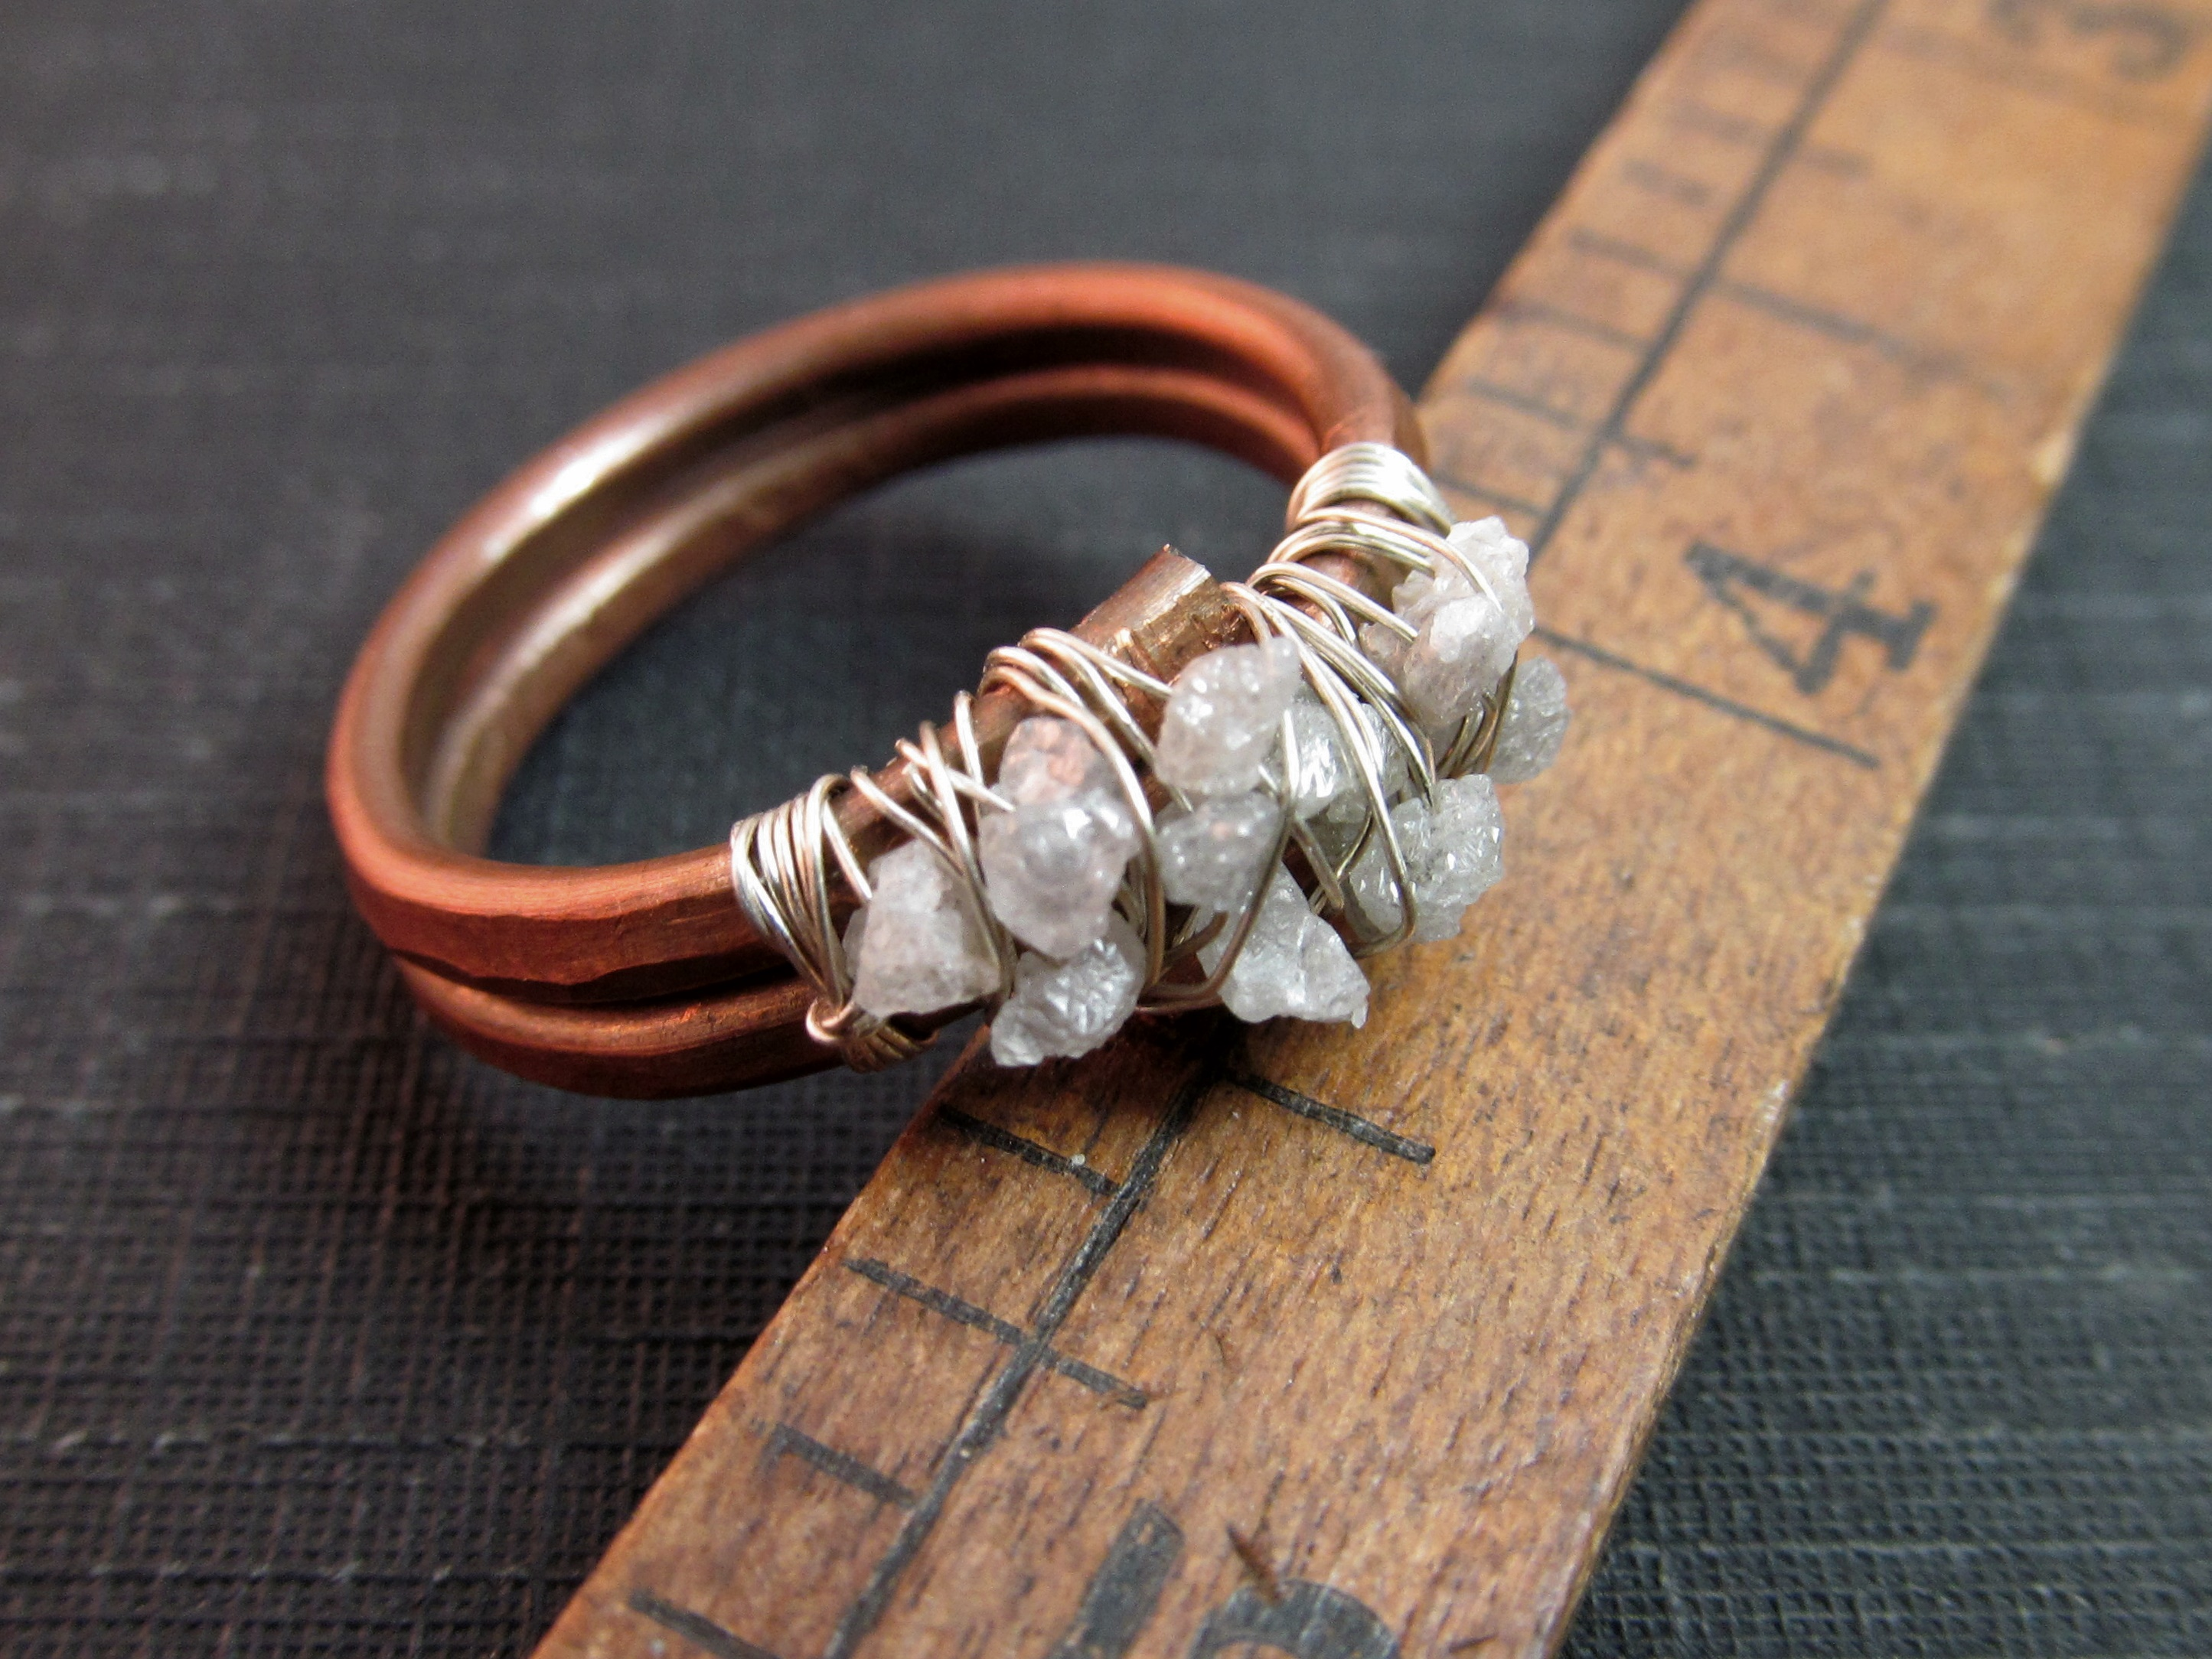 Double Band Raw Uncut Rough Diamond Ring Copper The